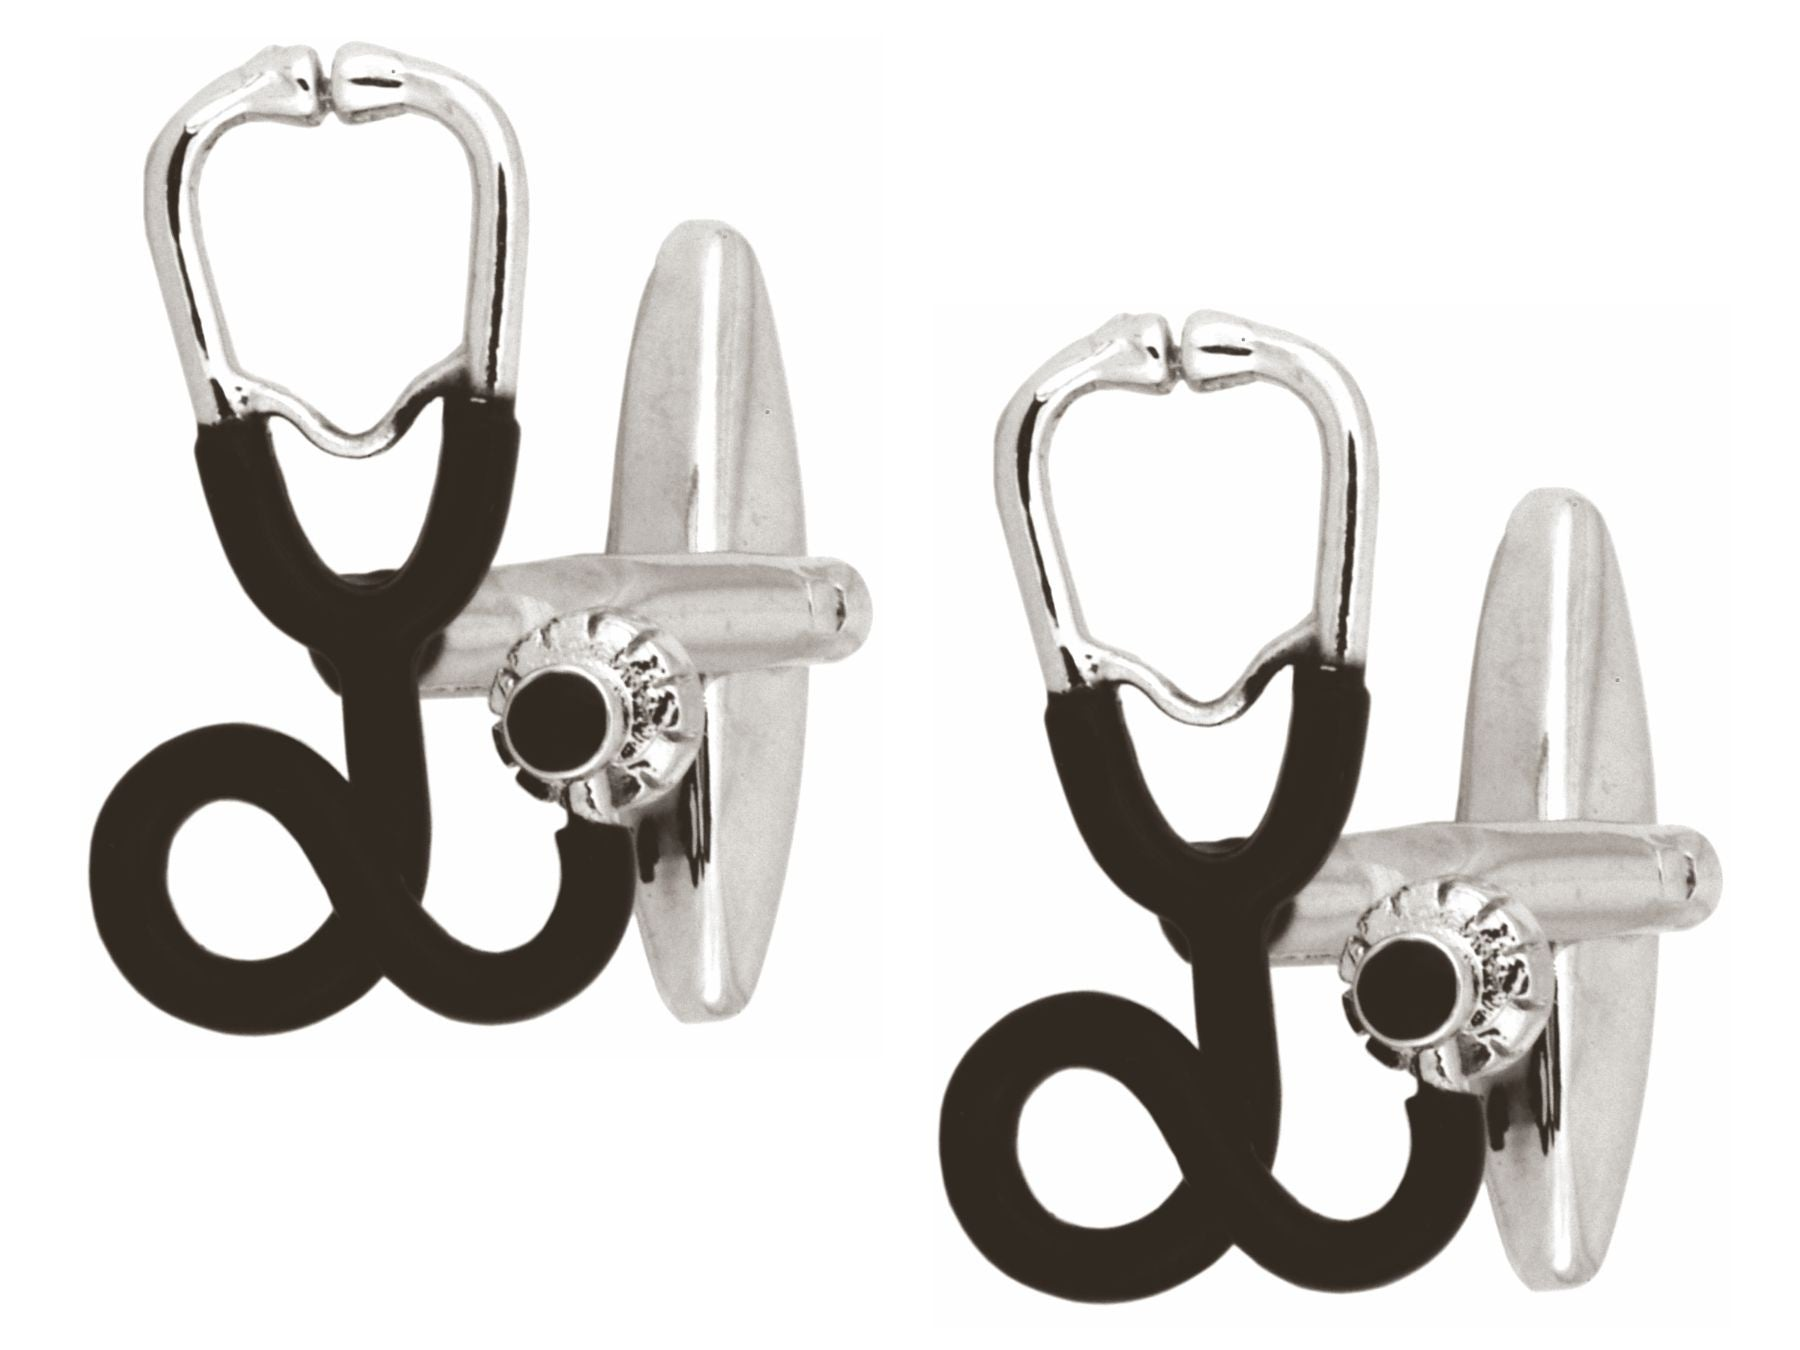 Stethoscope Rhodium Plated Cufflinks with black detail